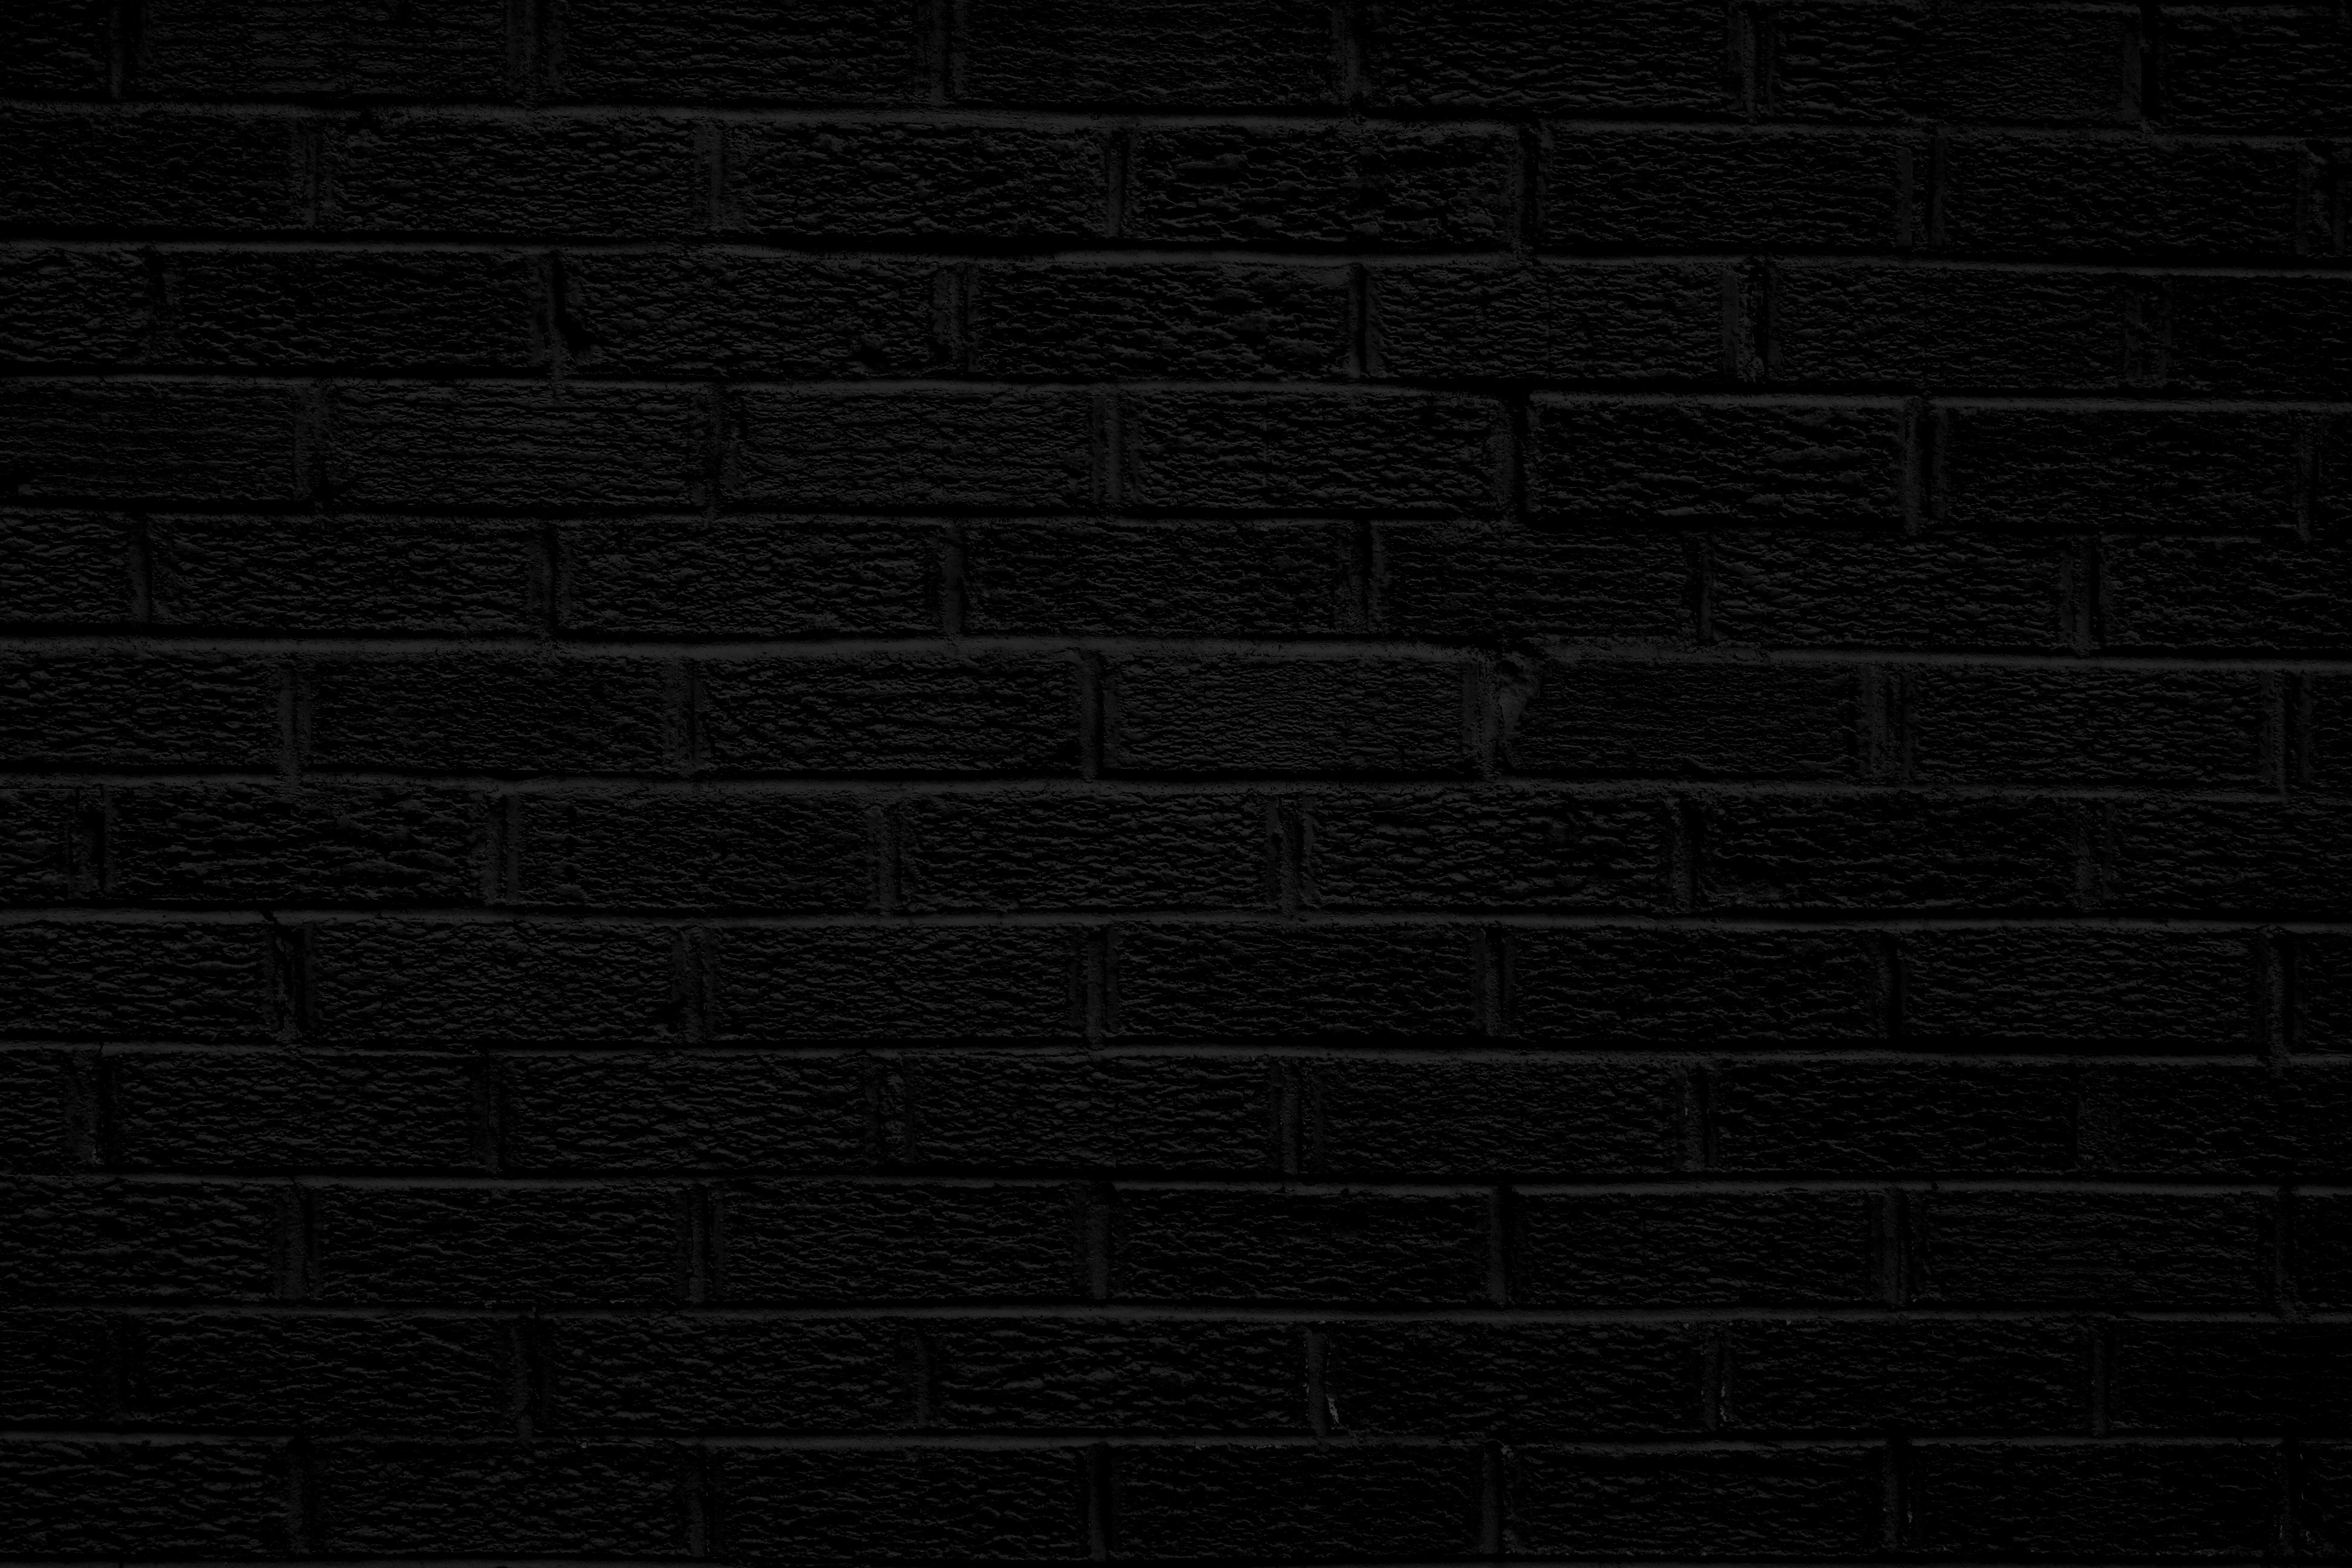 Graphic Design Background Textures | Black Brick Wall Texture ...